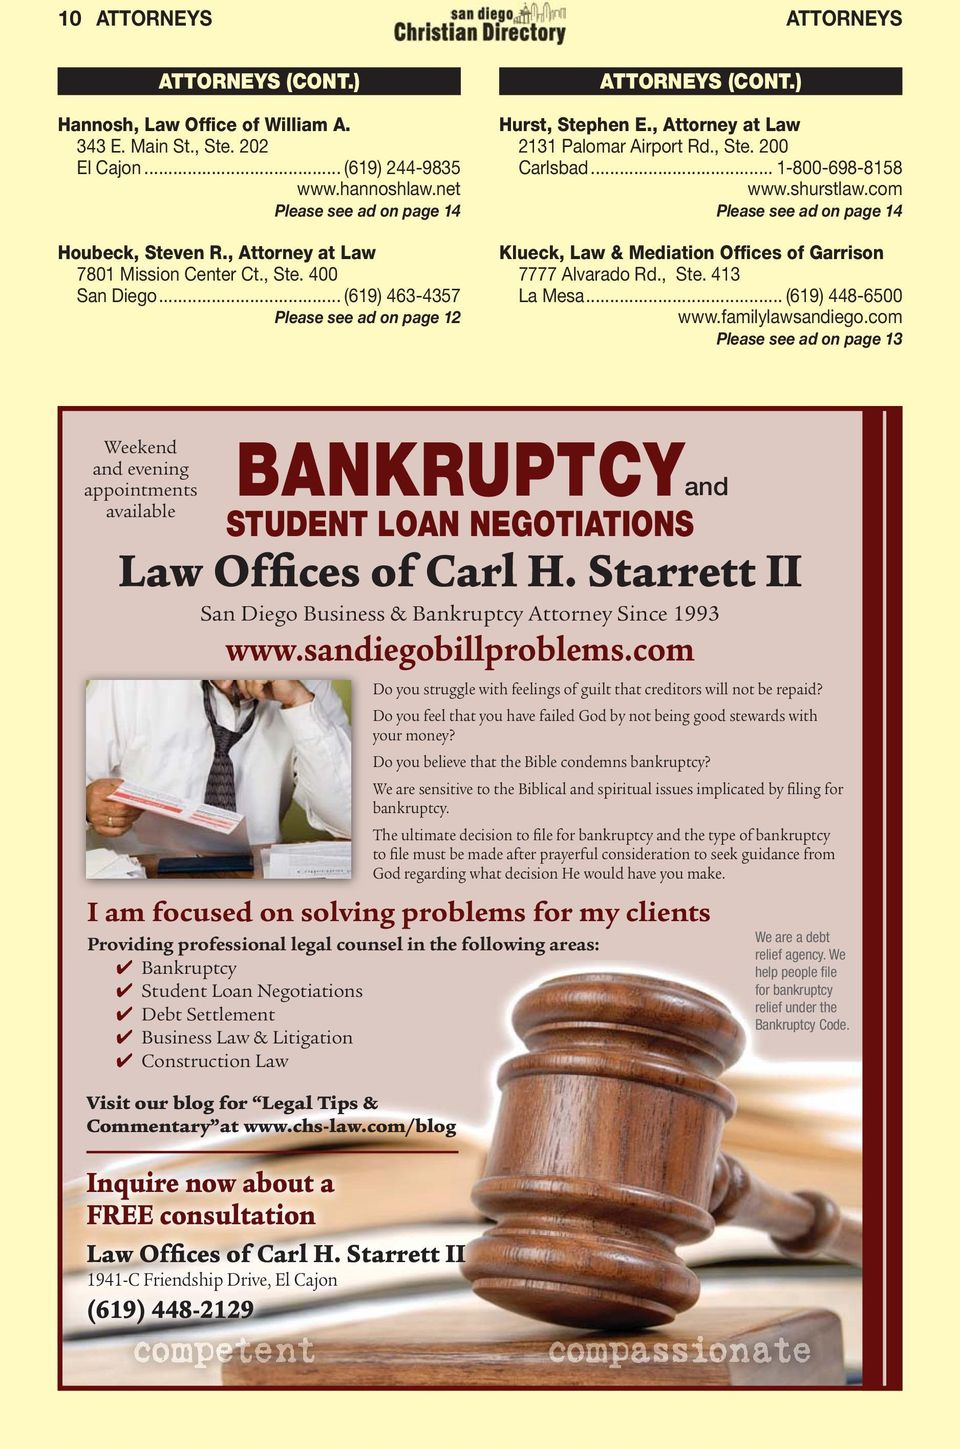 .. 1-800-698-8158 www.shurstlaw.com Please see ad on page 14 Klueck, Law & Mediation Offices of Garrison 7777 Alvarado Rd., Ste. 413 La Mesa... (619) 448-6500 www.familylawsandiego.